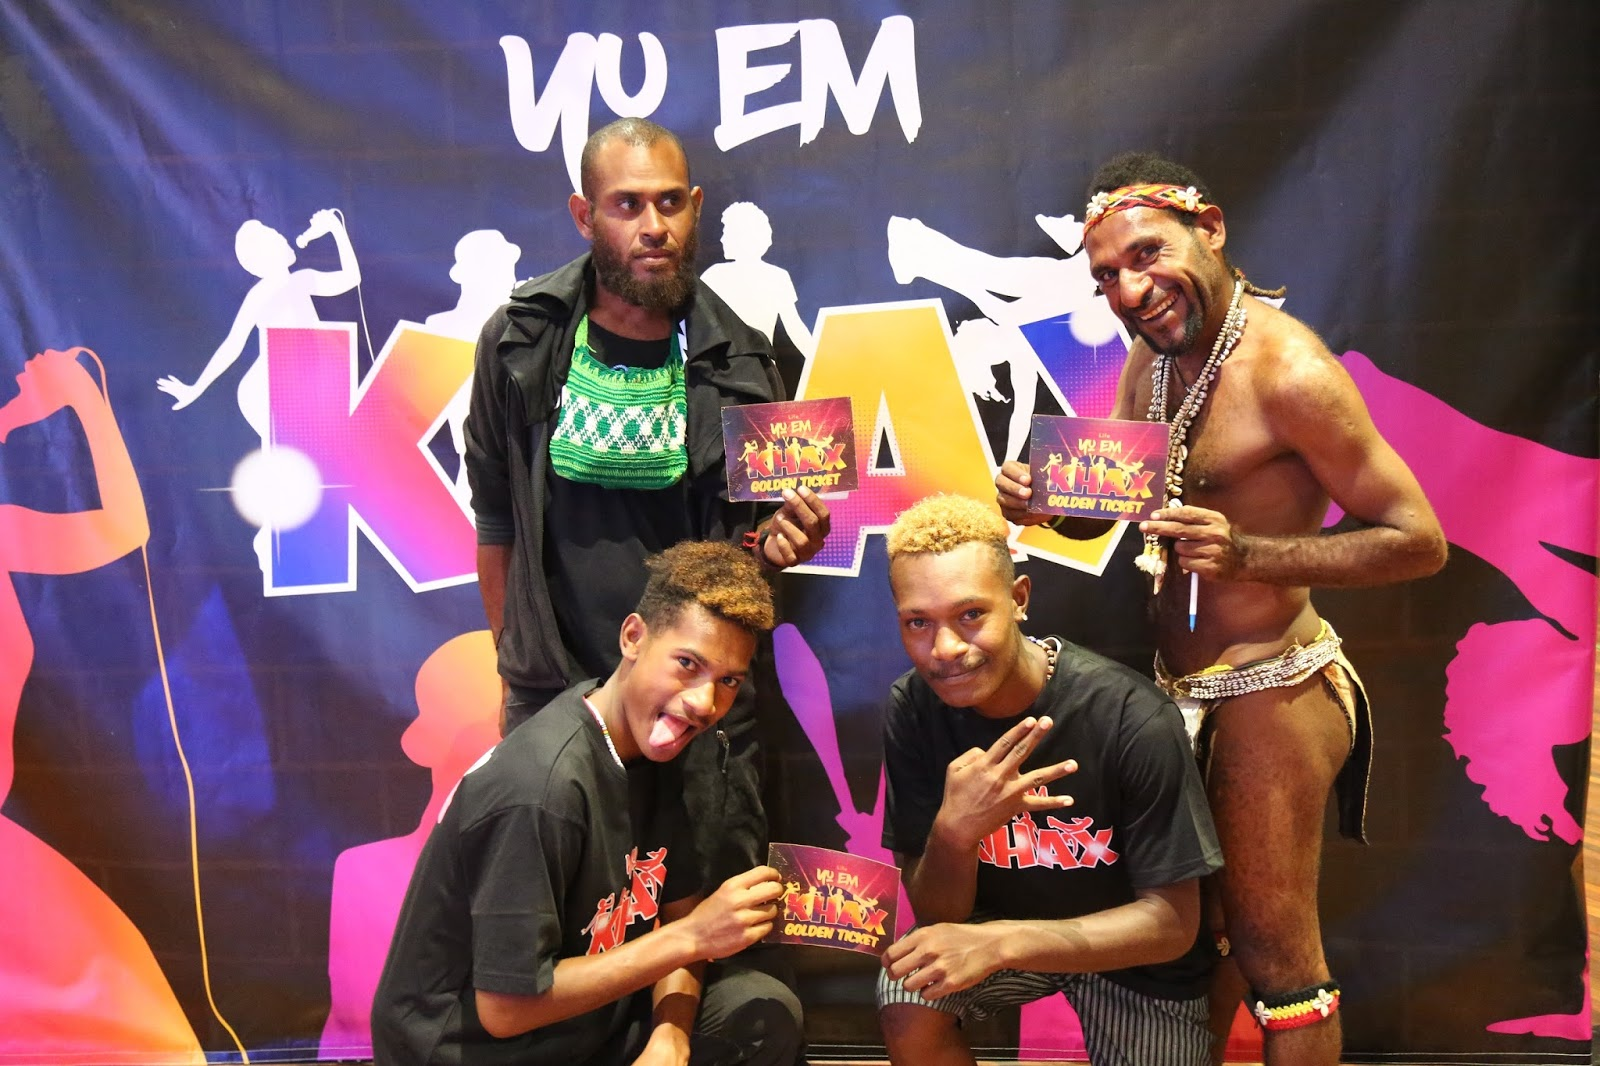 Digicel Play brings best of Yu Em Khax auditions to TVWAN.